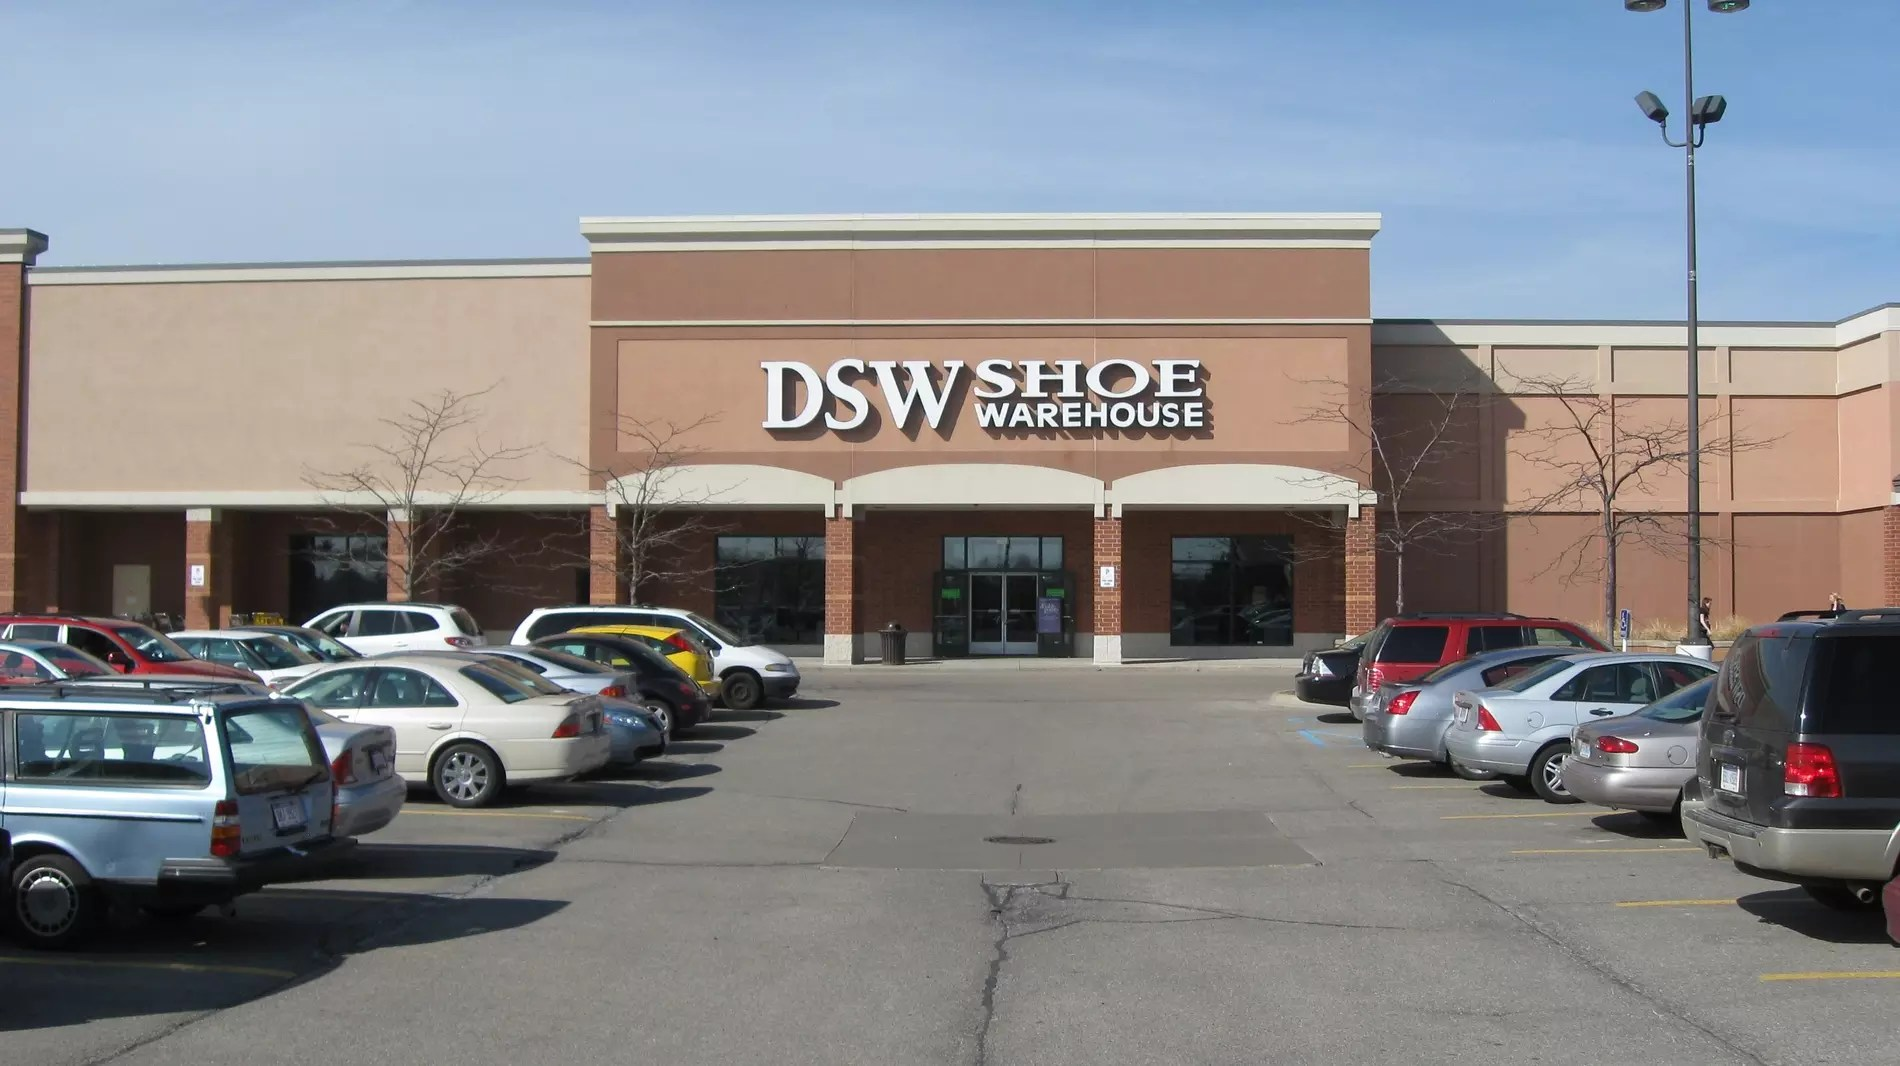 Warehouse In Michigan Dsw Women 39s And Men 39s Shoe Store In Ann Arbor Mi